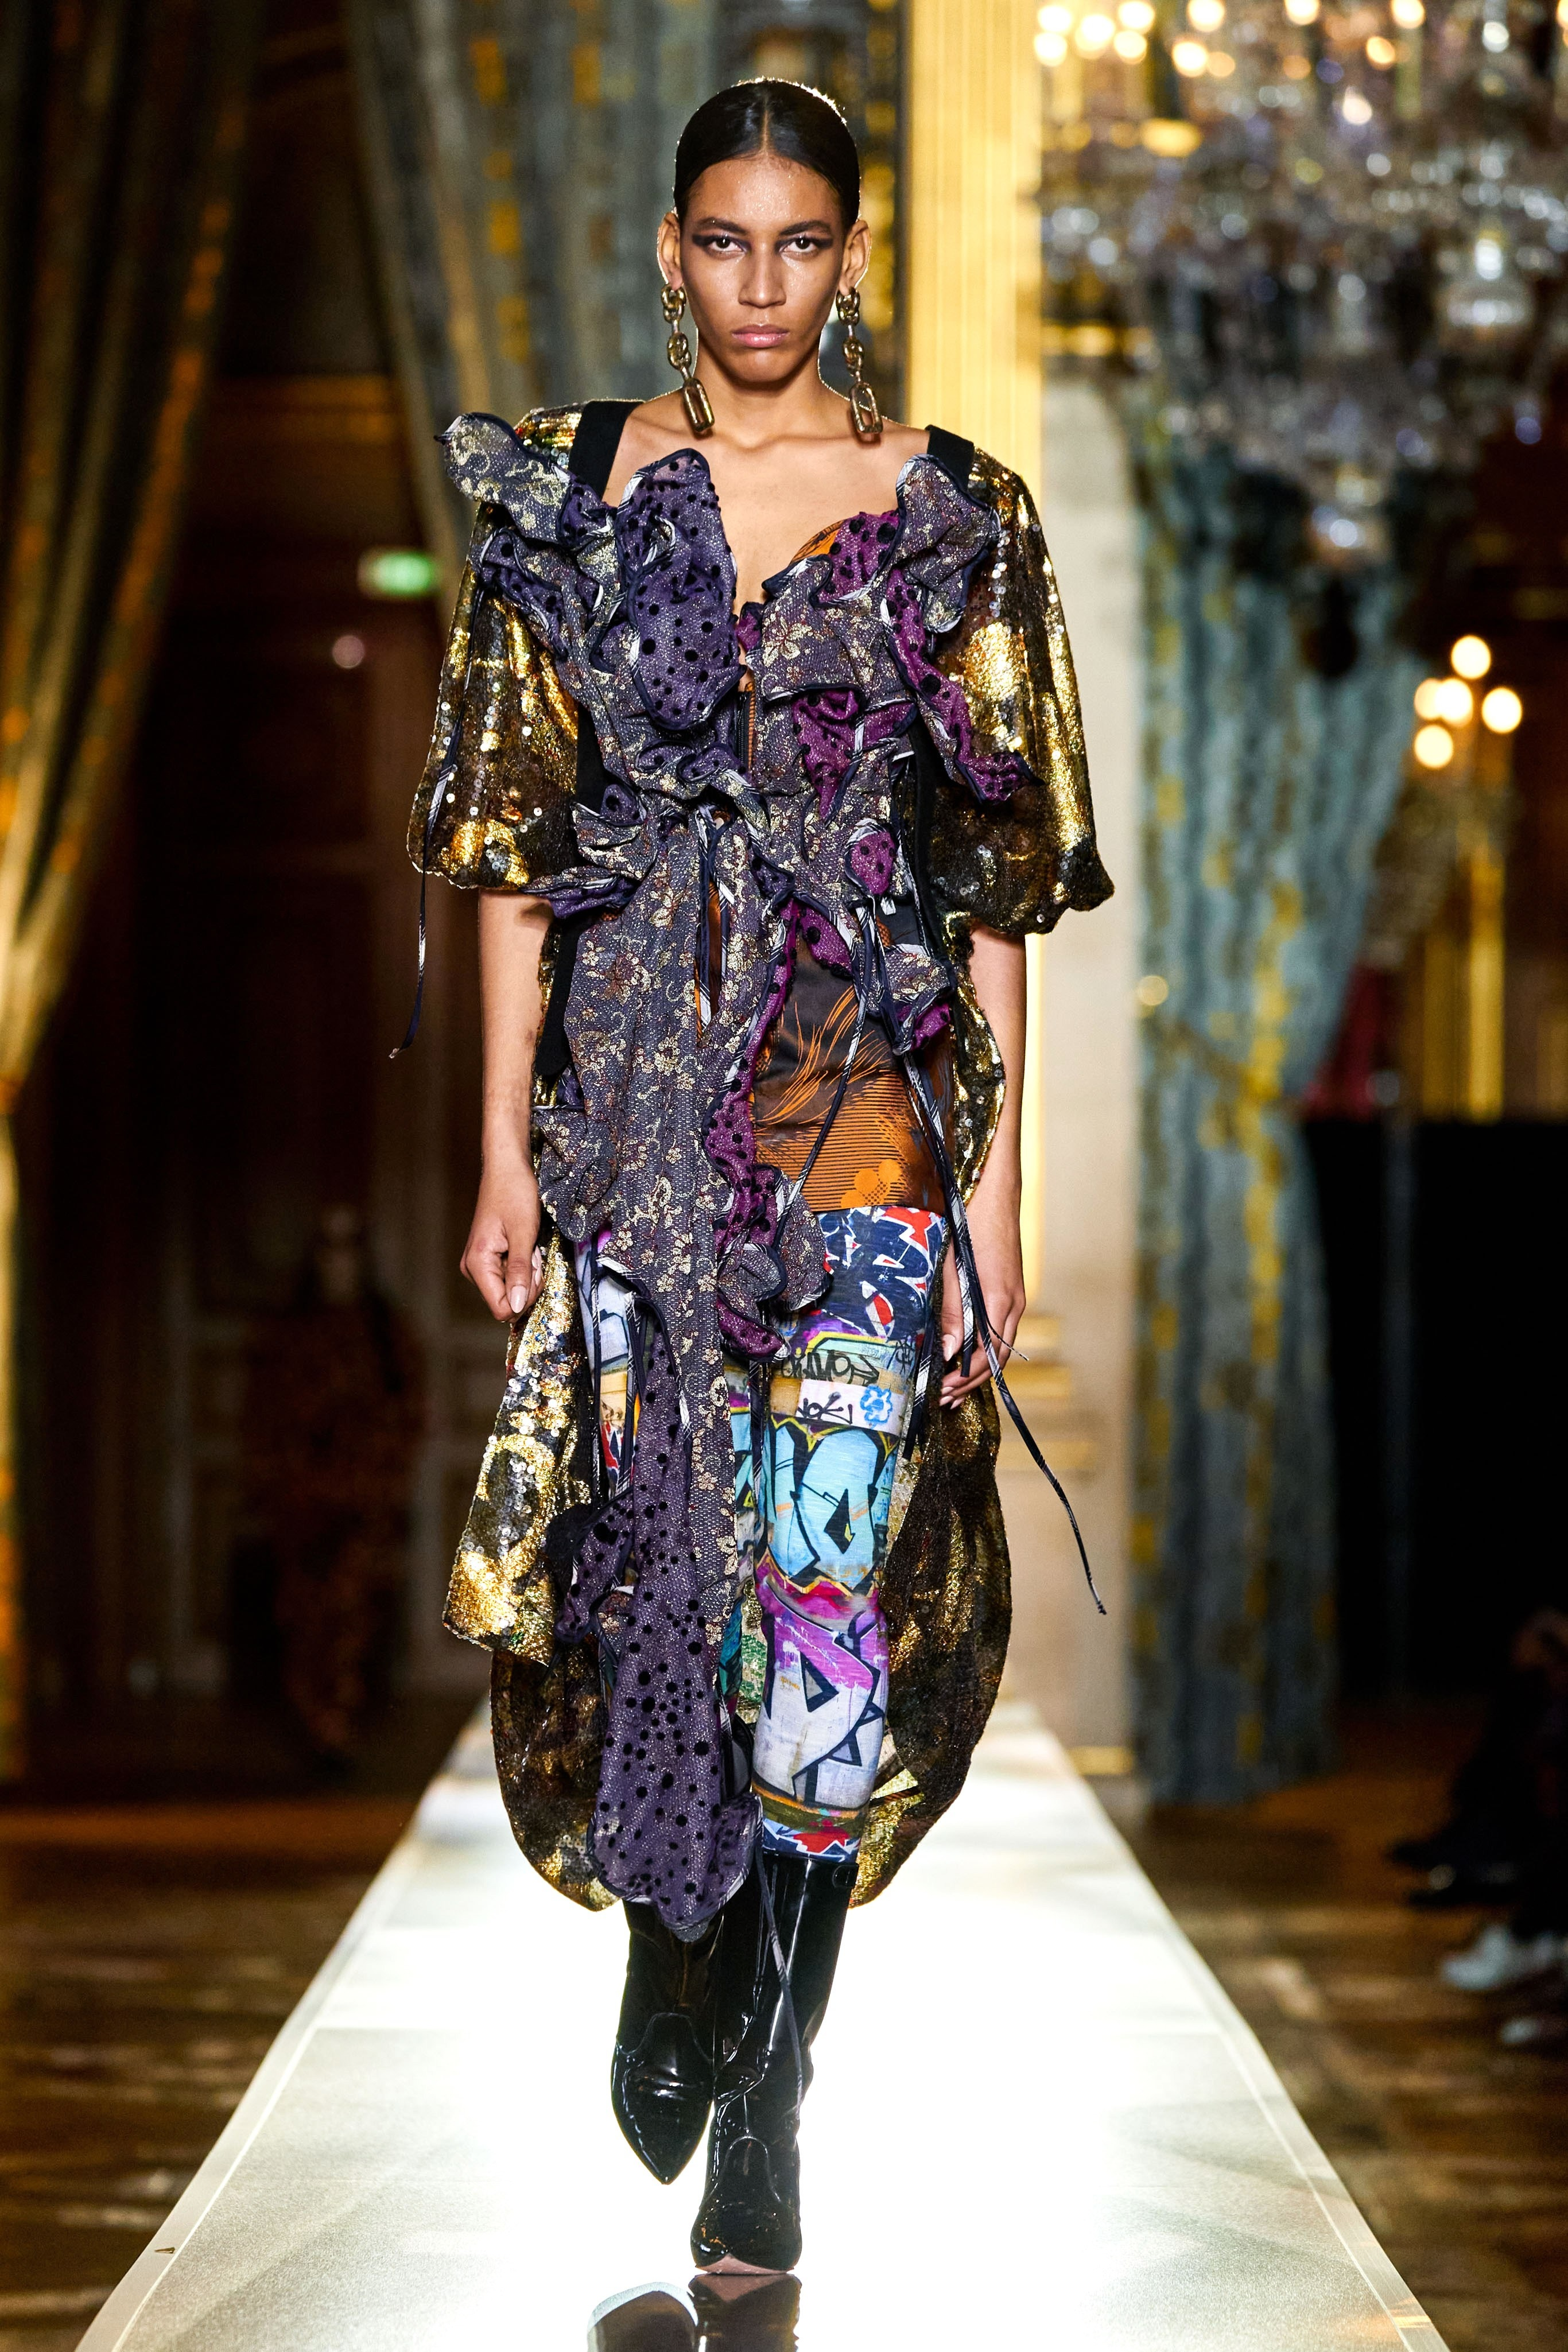 Paris fashion week fall 2020 ready to wear Andreas kronthaler for vivienne westwood